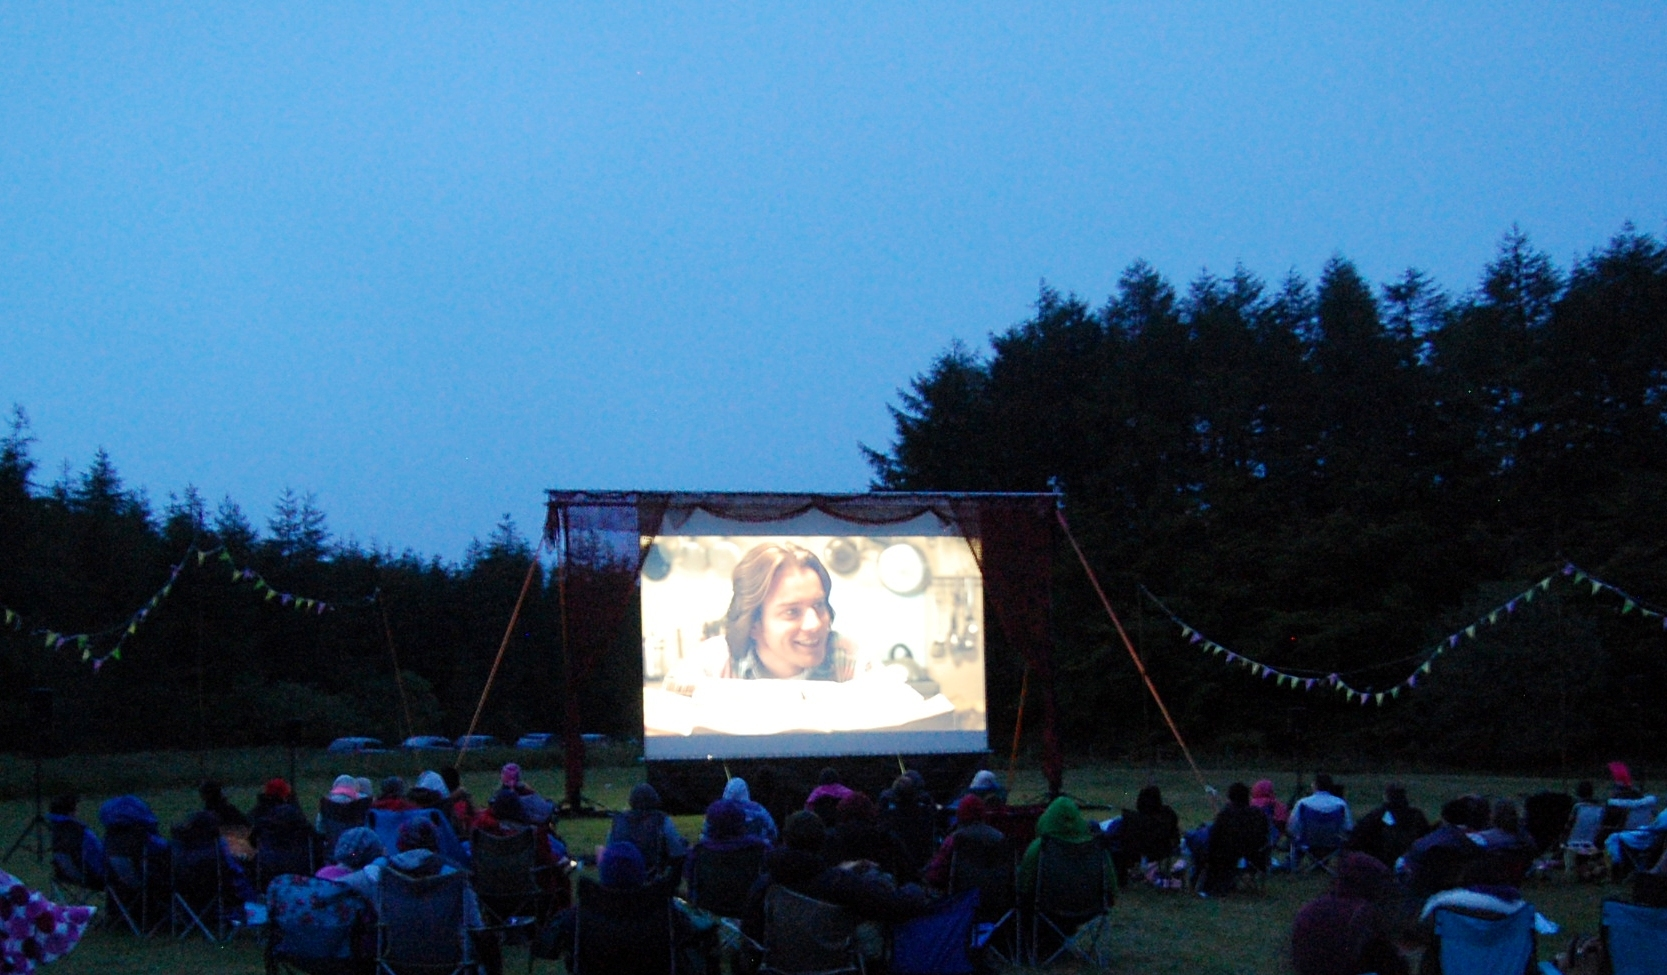 A previous Picnic Cinema event in Dalby Forest